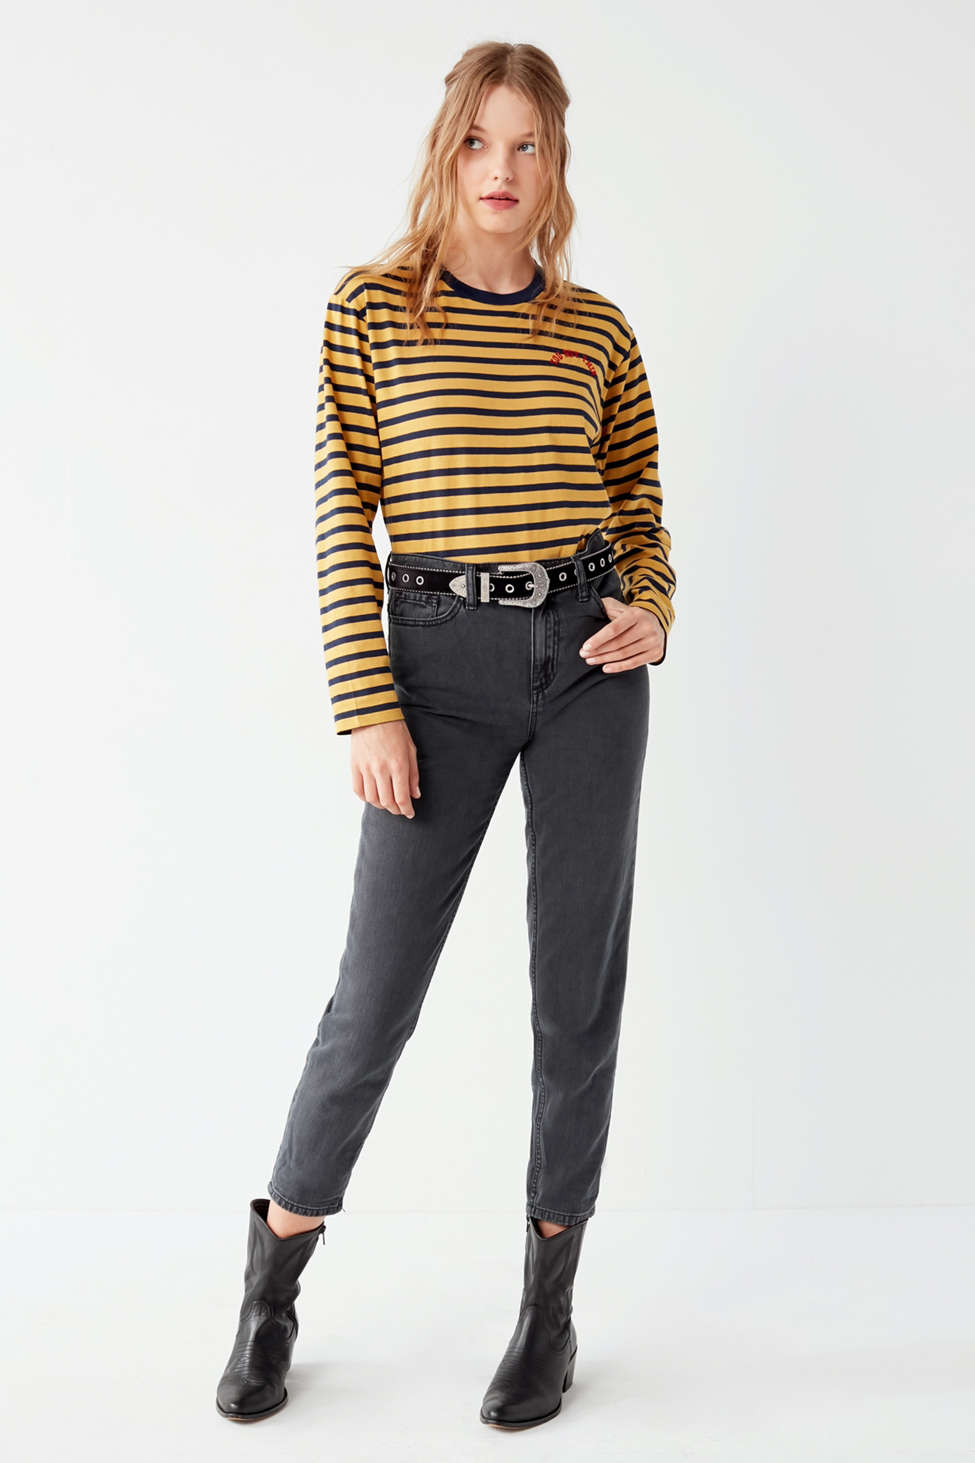 http://www.urbanoutfitters.com/urban/catalog/productdetail.jsp?id=30968168&category=W_APP_JEANS